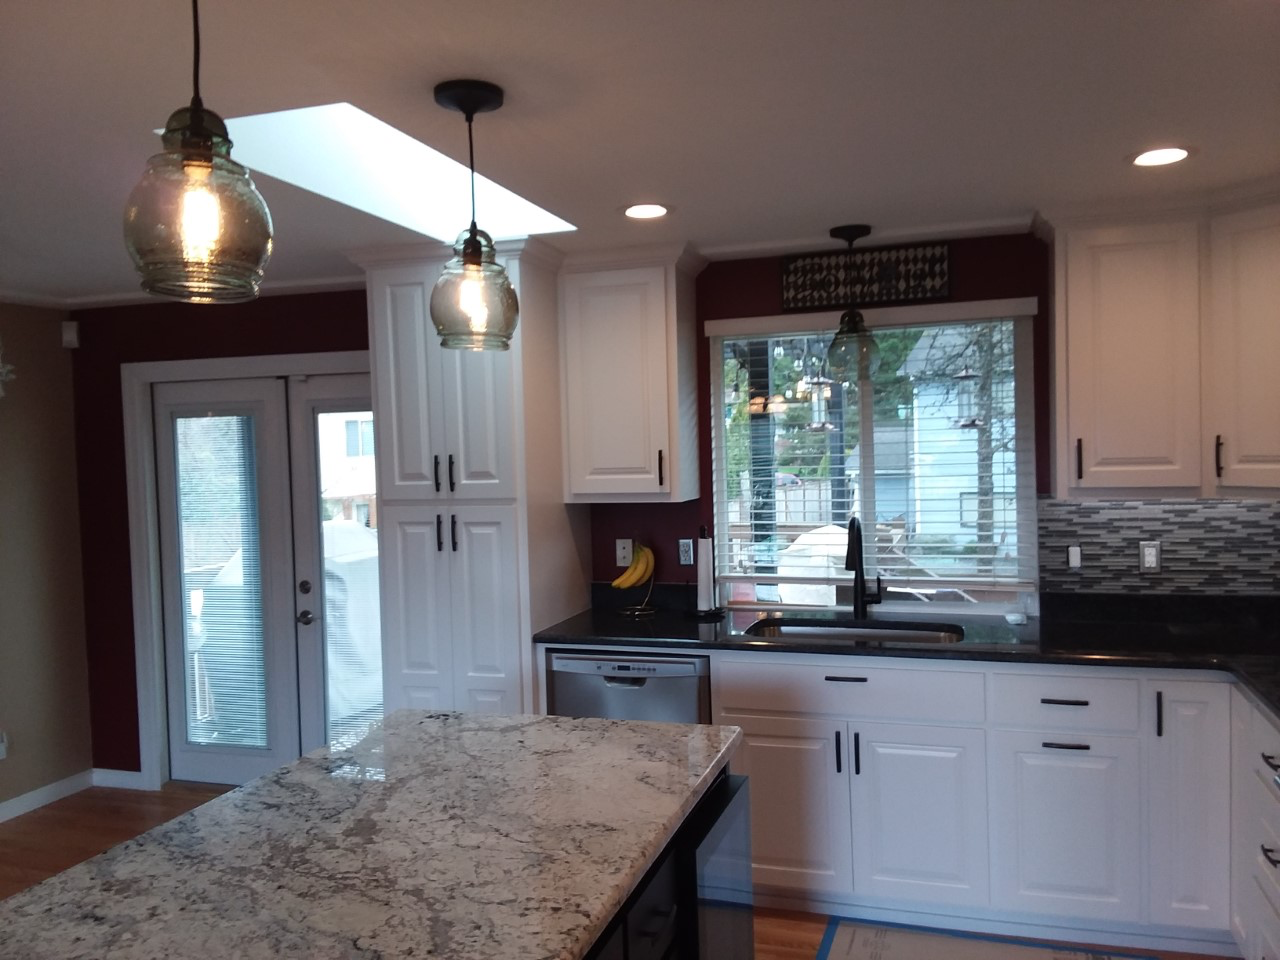 Creative Custom Cabinets | White Kitchen Cabinets With ...